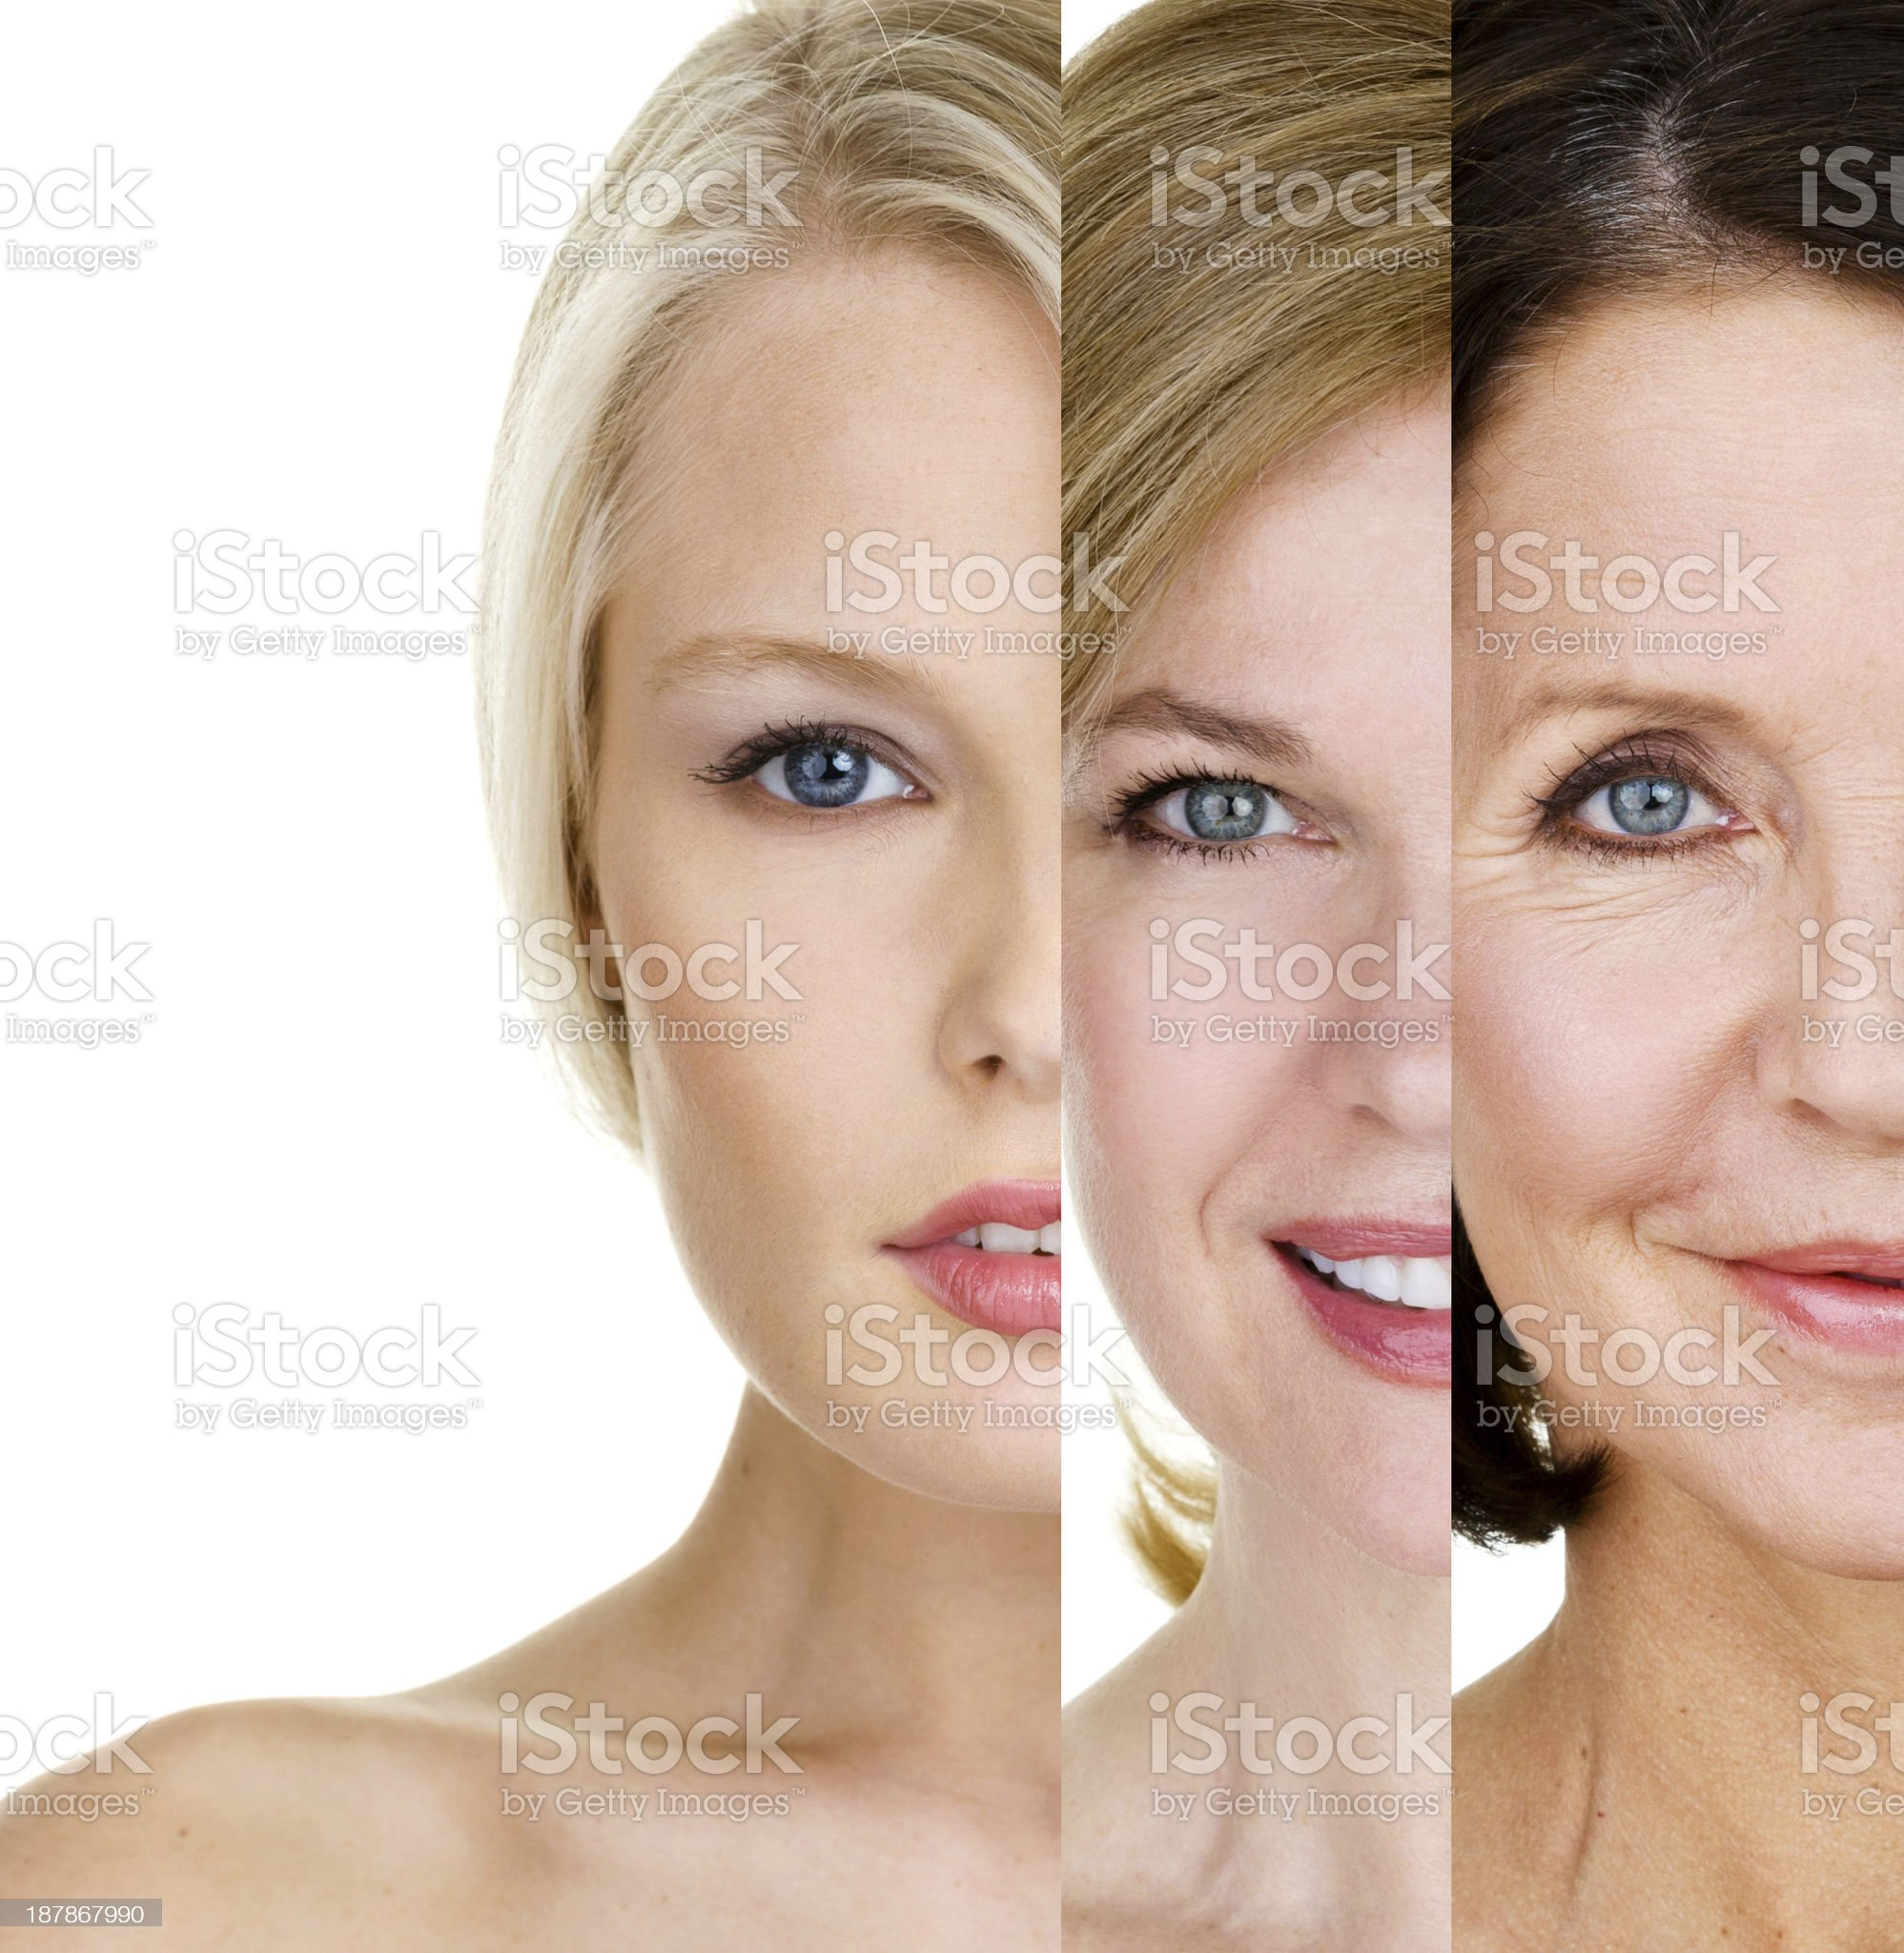 Women of different ages royalty-free stock photo